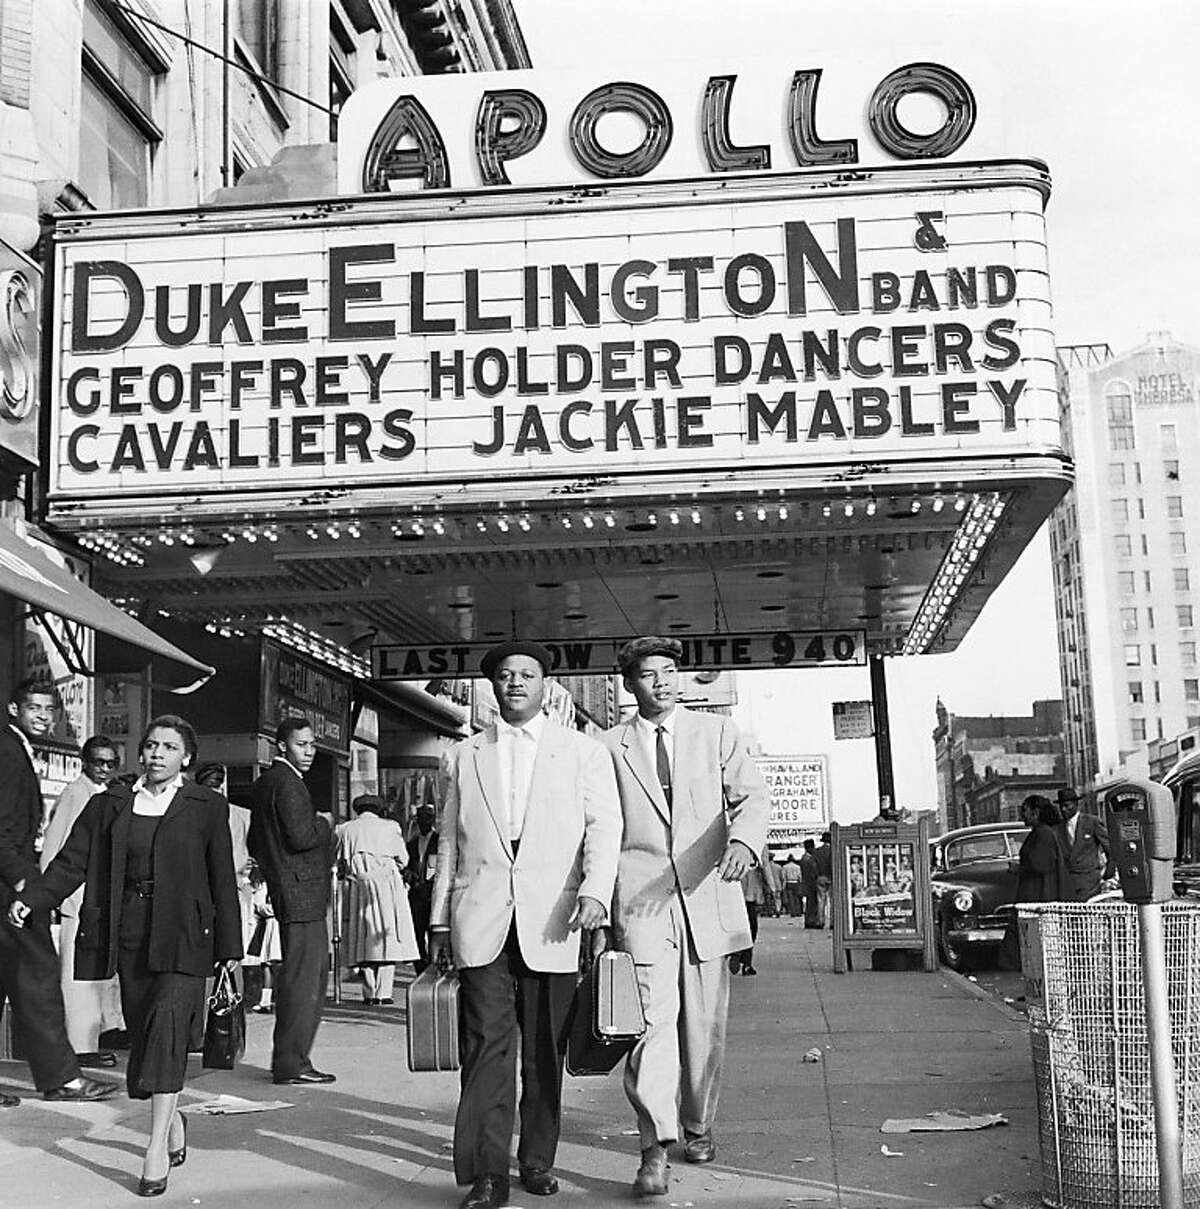 In this 1955 file photo, trumpeter Clark Terry walks with his son Rudolph under the Apollo Theater marquee after Terry's first stage show with Duke Ellington's band in the Harlem neighborhood of New York City. Columbia University and the Apollo Theater Foundation on Thursday, Oct. 23, 2008, announced a joint project to create an oral history of the famed Harlem theater that launched the careers of Ella Fitzgerald, Sarah Vaughan, Smokey Robinson, Stevie Wonder, and other music legends. (AP Photo/G. Marshall Wilson/Ebony Collection, File) ** MANDATORY CREDIT; NO SALES ** Ran on: 10-25-2008 Trumpeter Clark Terry (center left) walks under Apollo marquee.